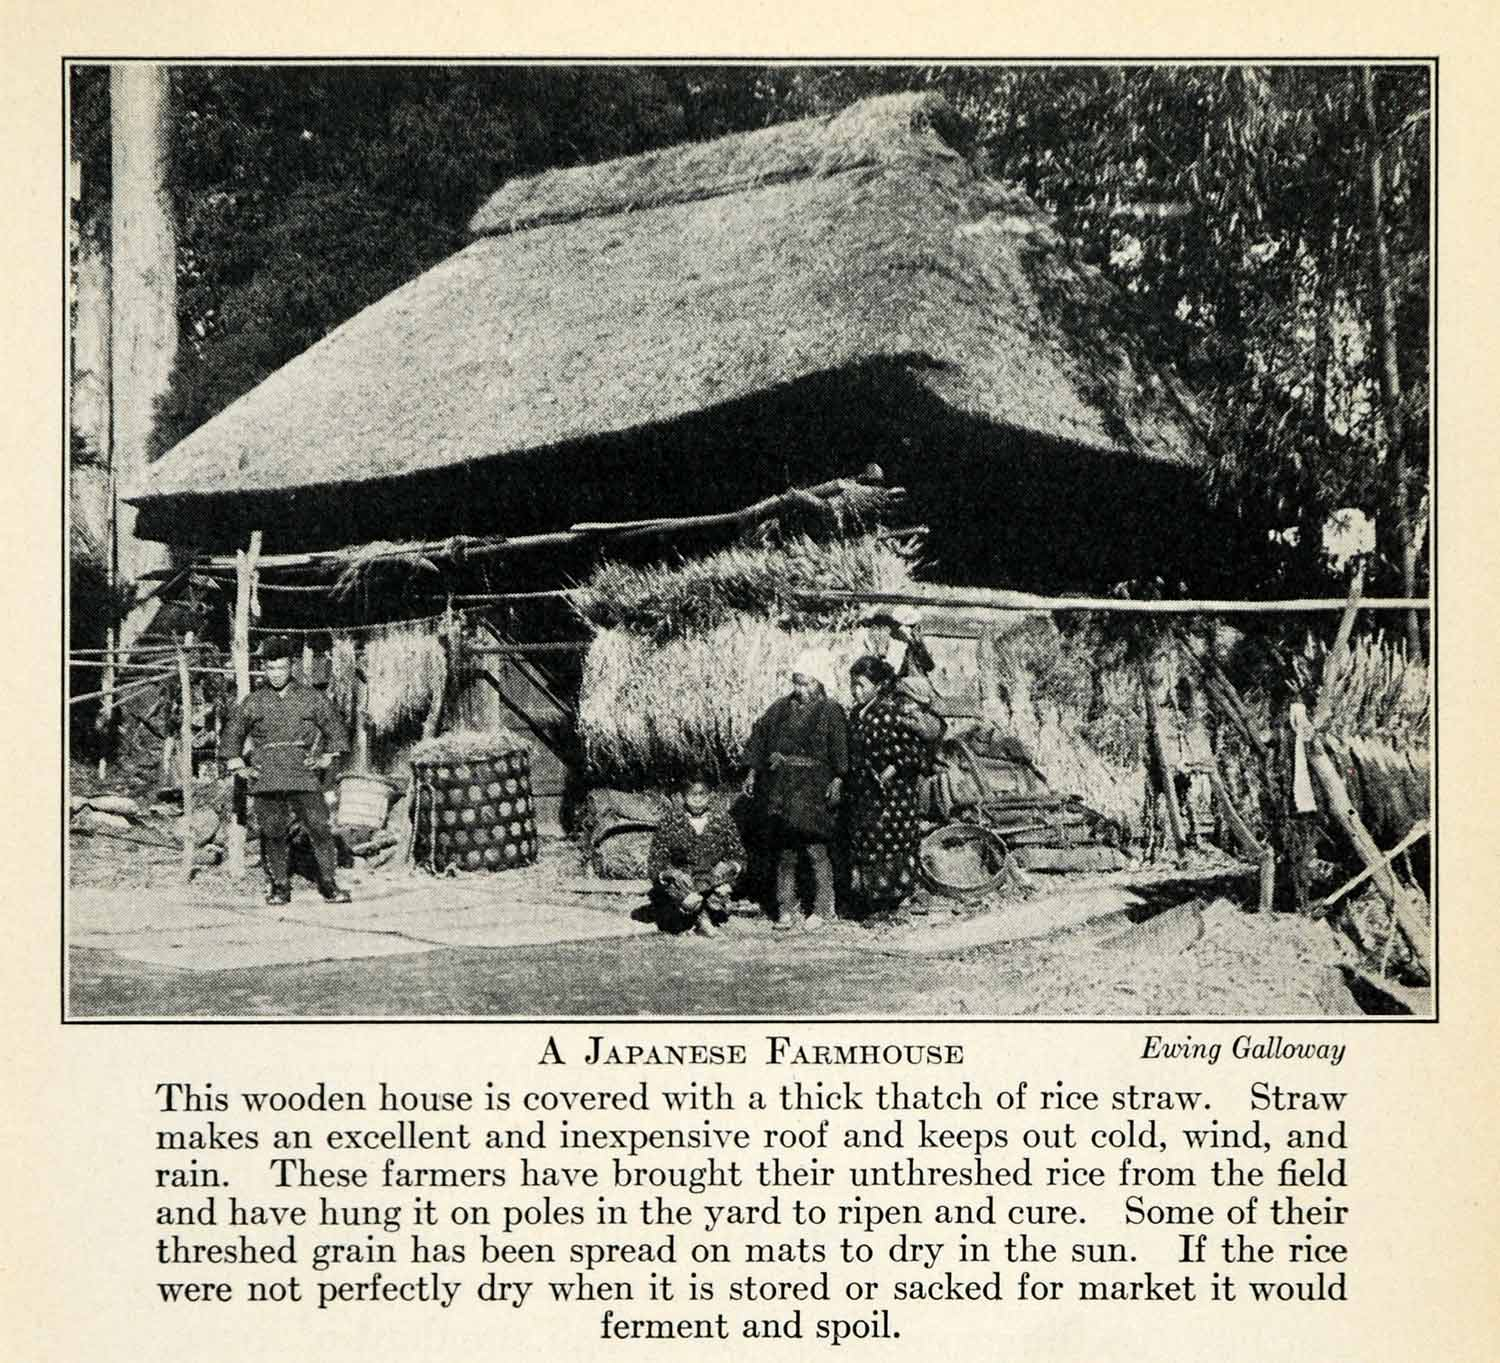 1937 Print Japan Asia Agriculture Farming Farmhouse Costume Rice Production XGY4